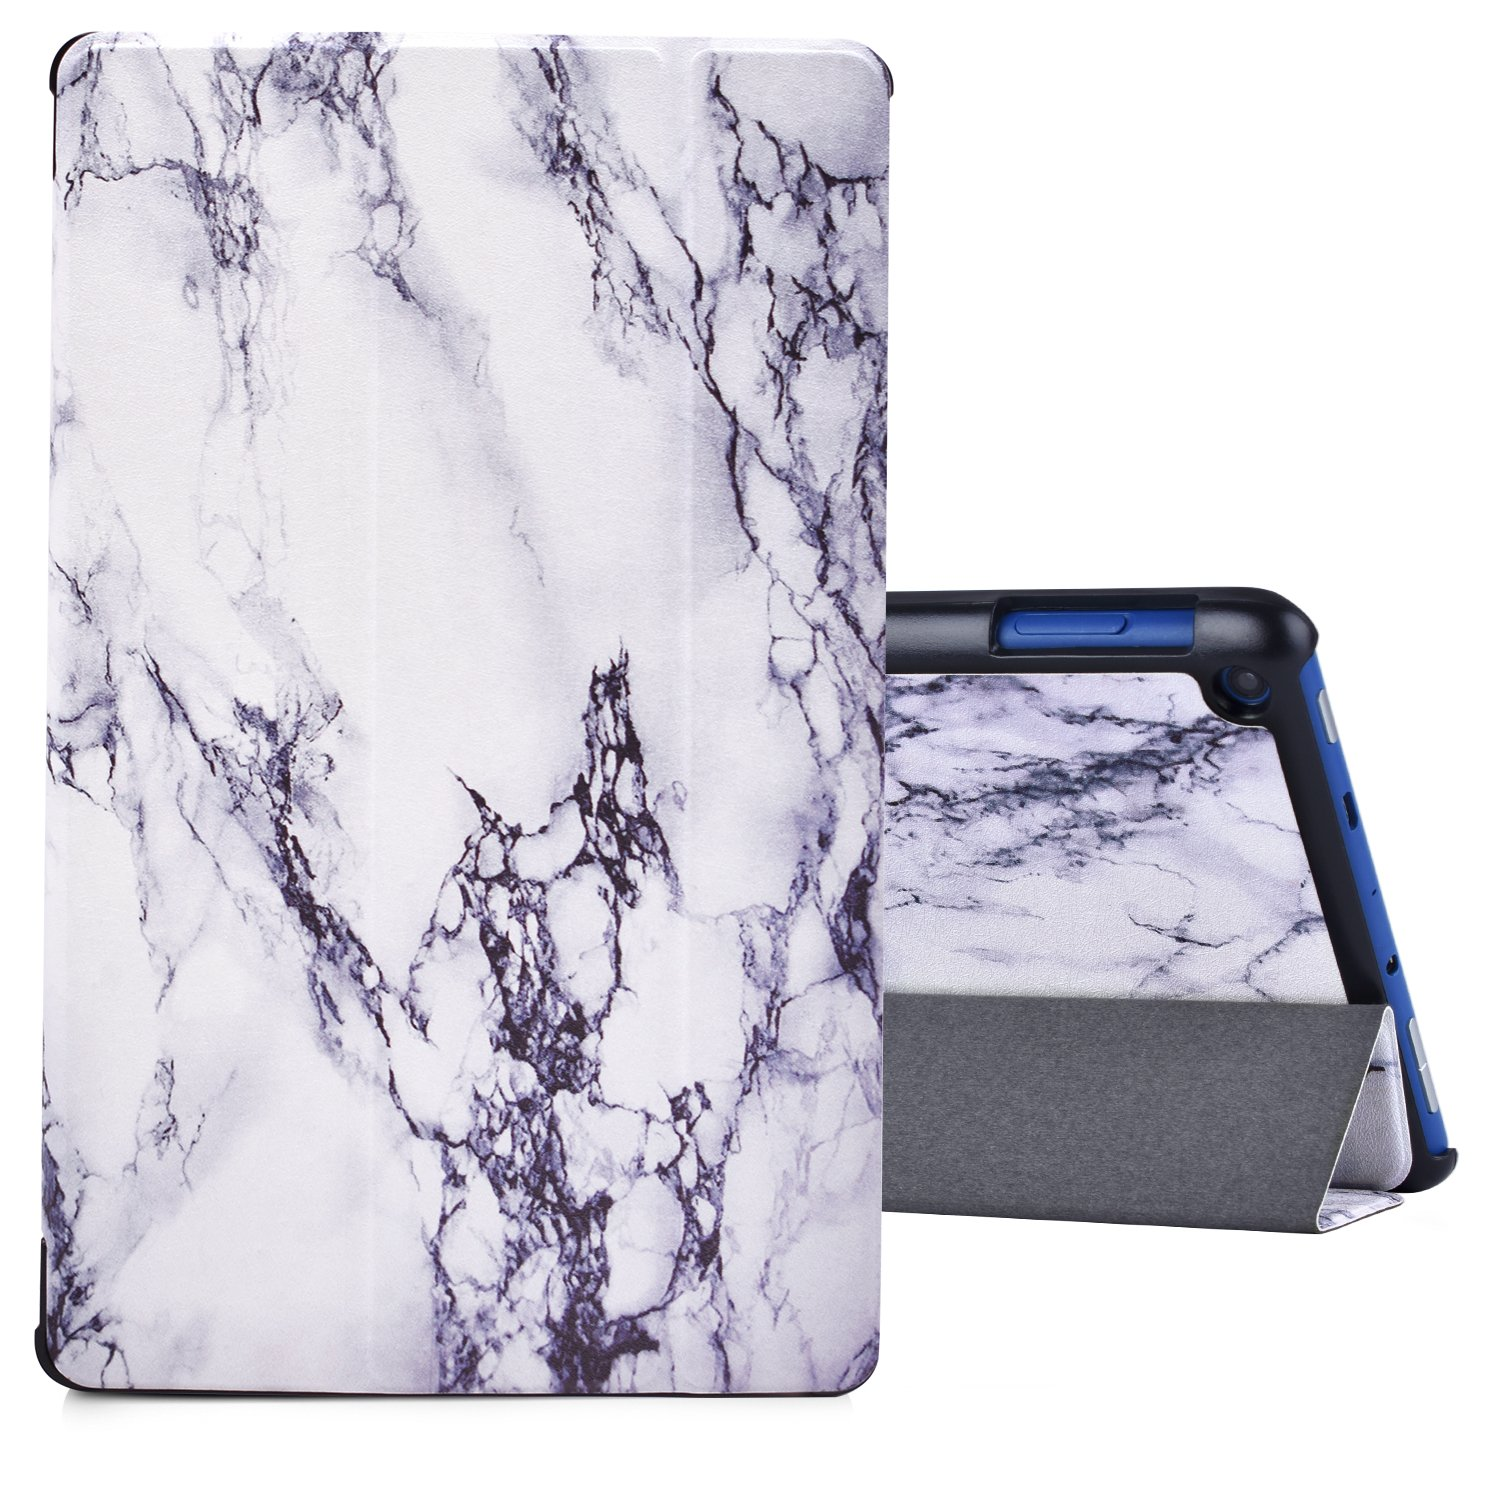 Dopup Fire HD 8 Case Tablet(7th Generation,2017 Release) Stand Protective Smart Cover with Auto Sleep/Wake(White Marble)